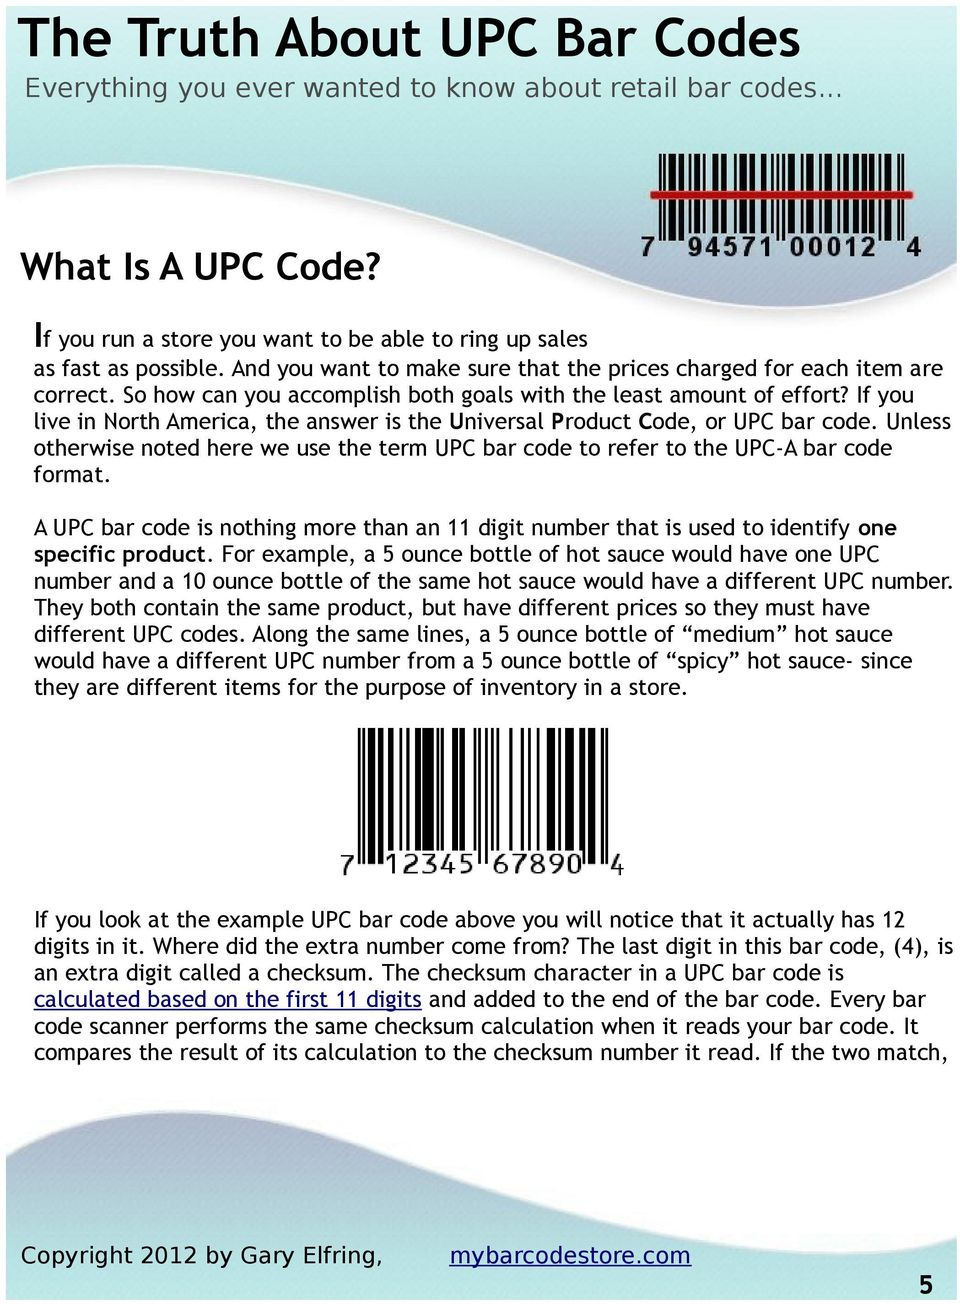 Unless otherwise noted here we use the term UPC bar code to refer to the UPC-A bar code format. A UPC bar code is nothing more than an 11 digit number that is used to identify one specific product.